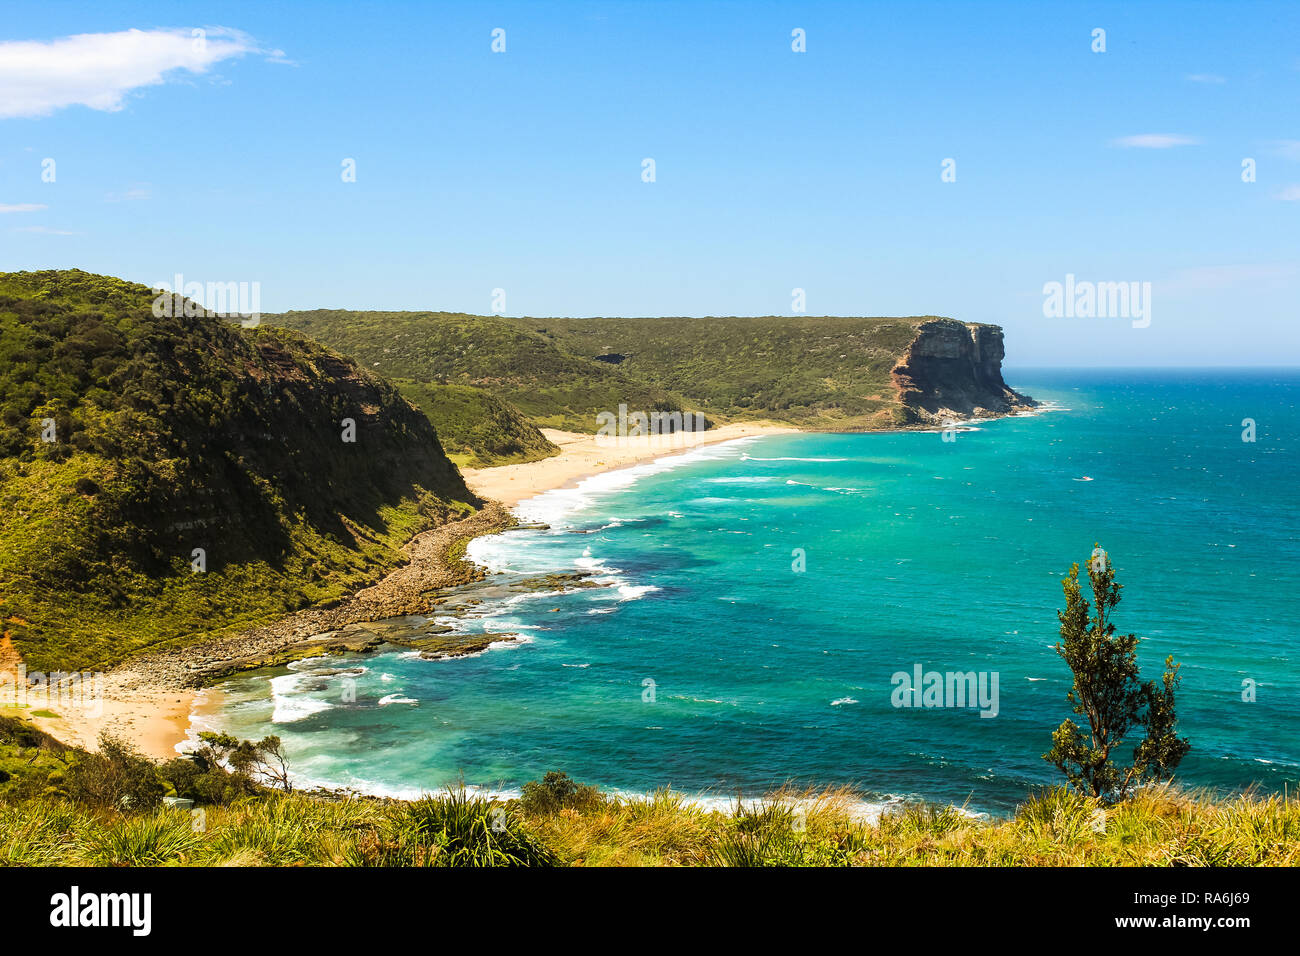 View onto Garie Beach from a higher angle in the Royal National Park near Sydney in summer with clear sky and blue sea (Sydney, Australia) - Stock Image